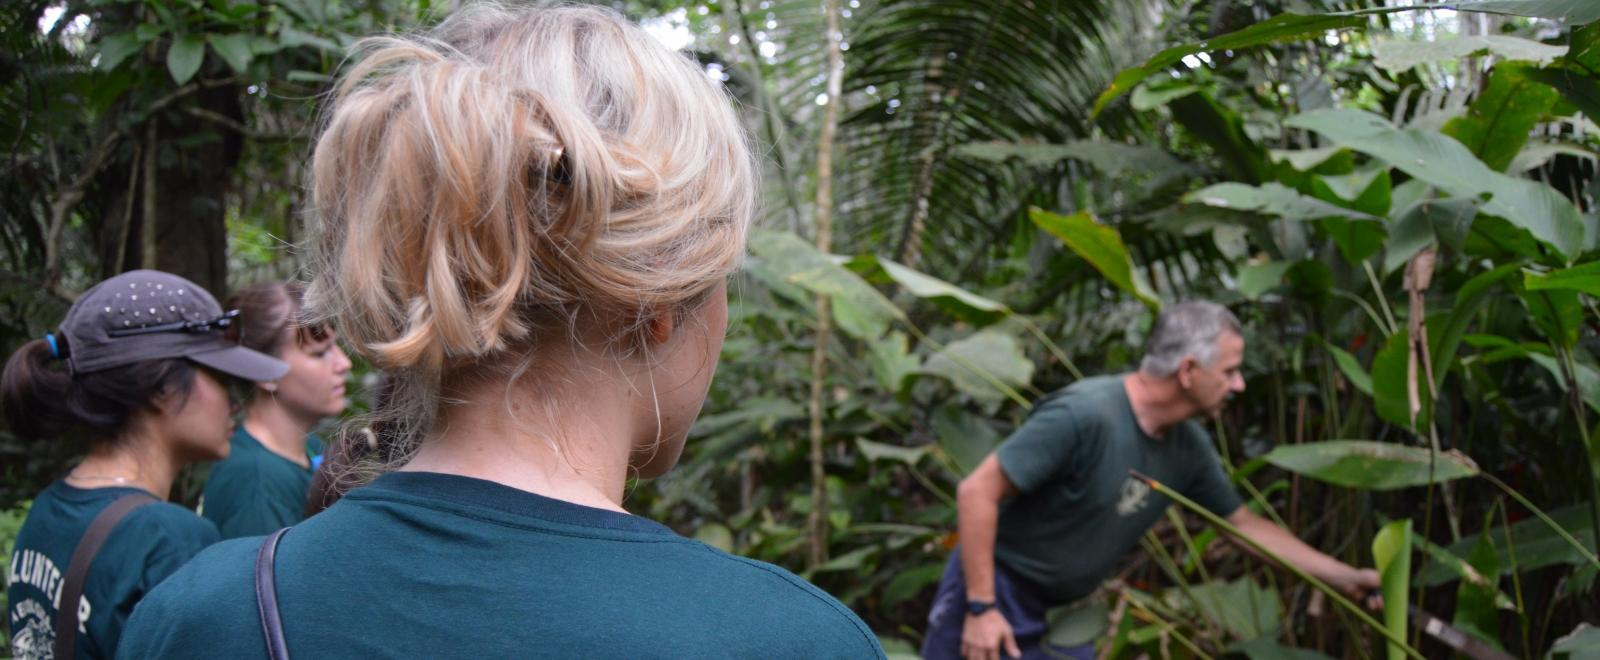 A staff member shows teenagers different species during rainforest conservation volunteering in Peru